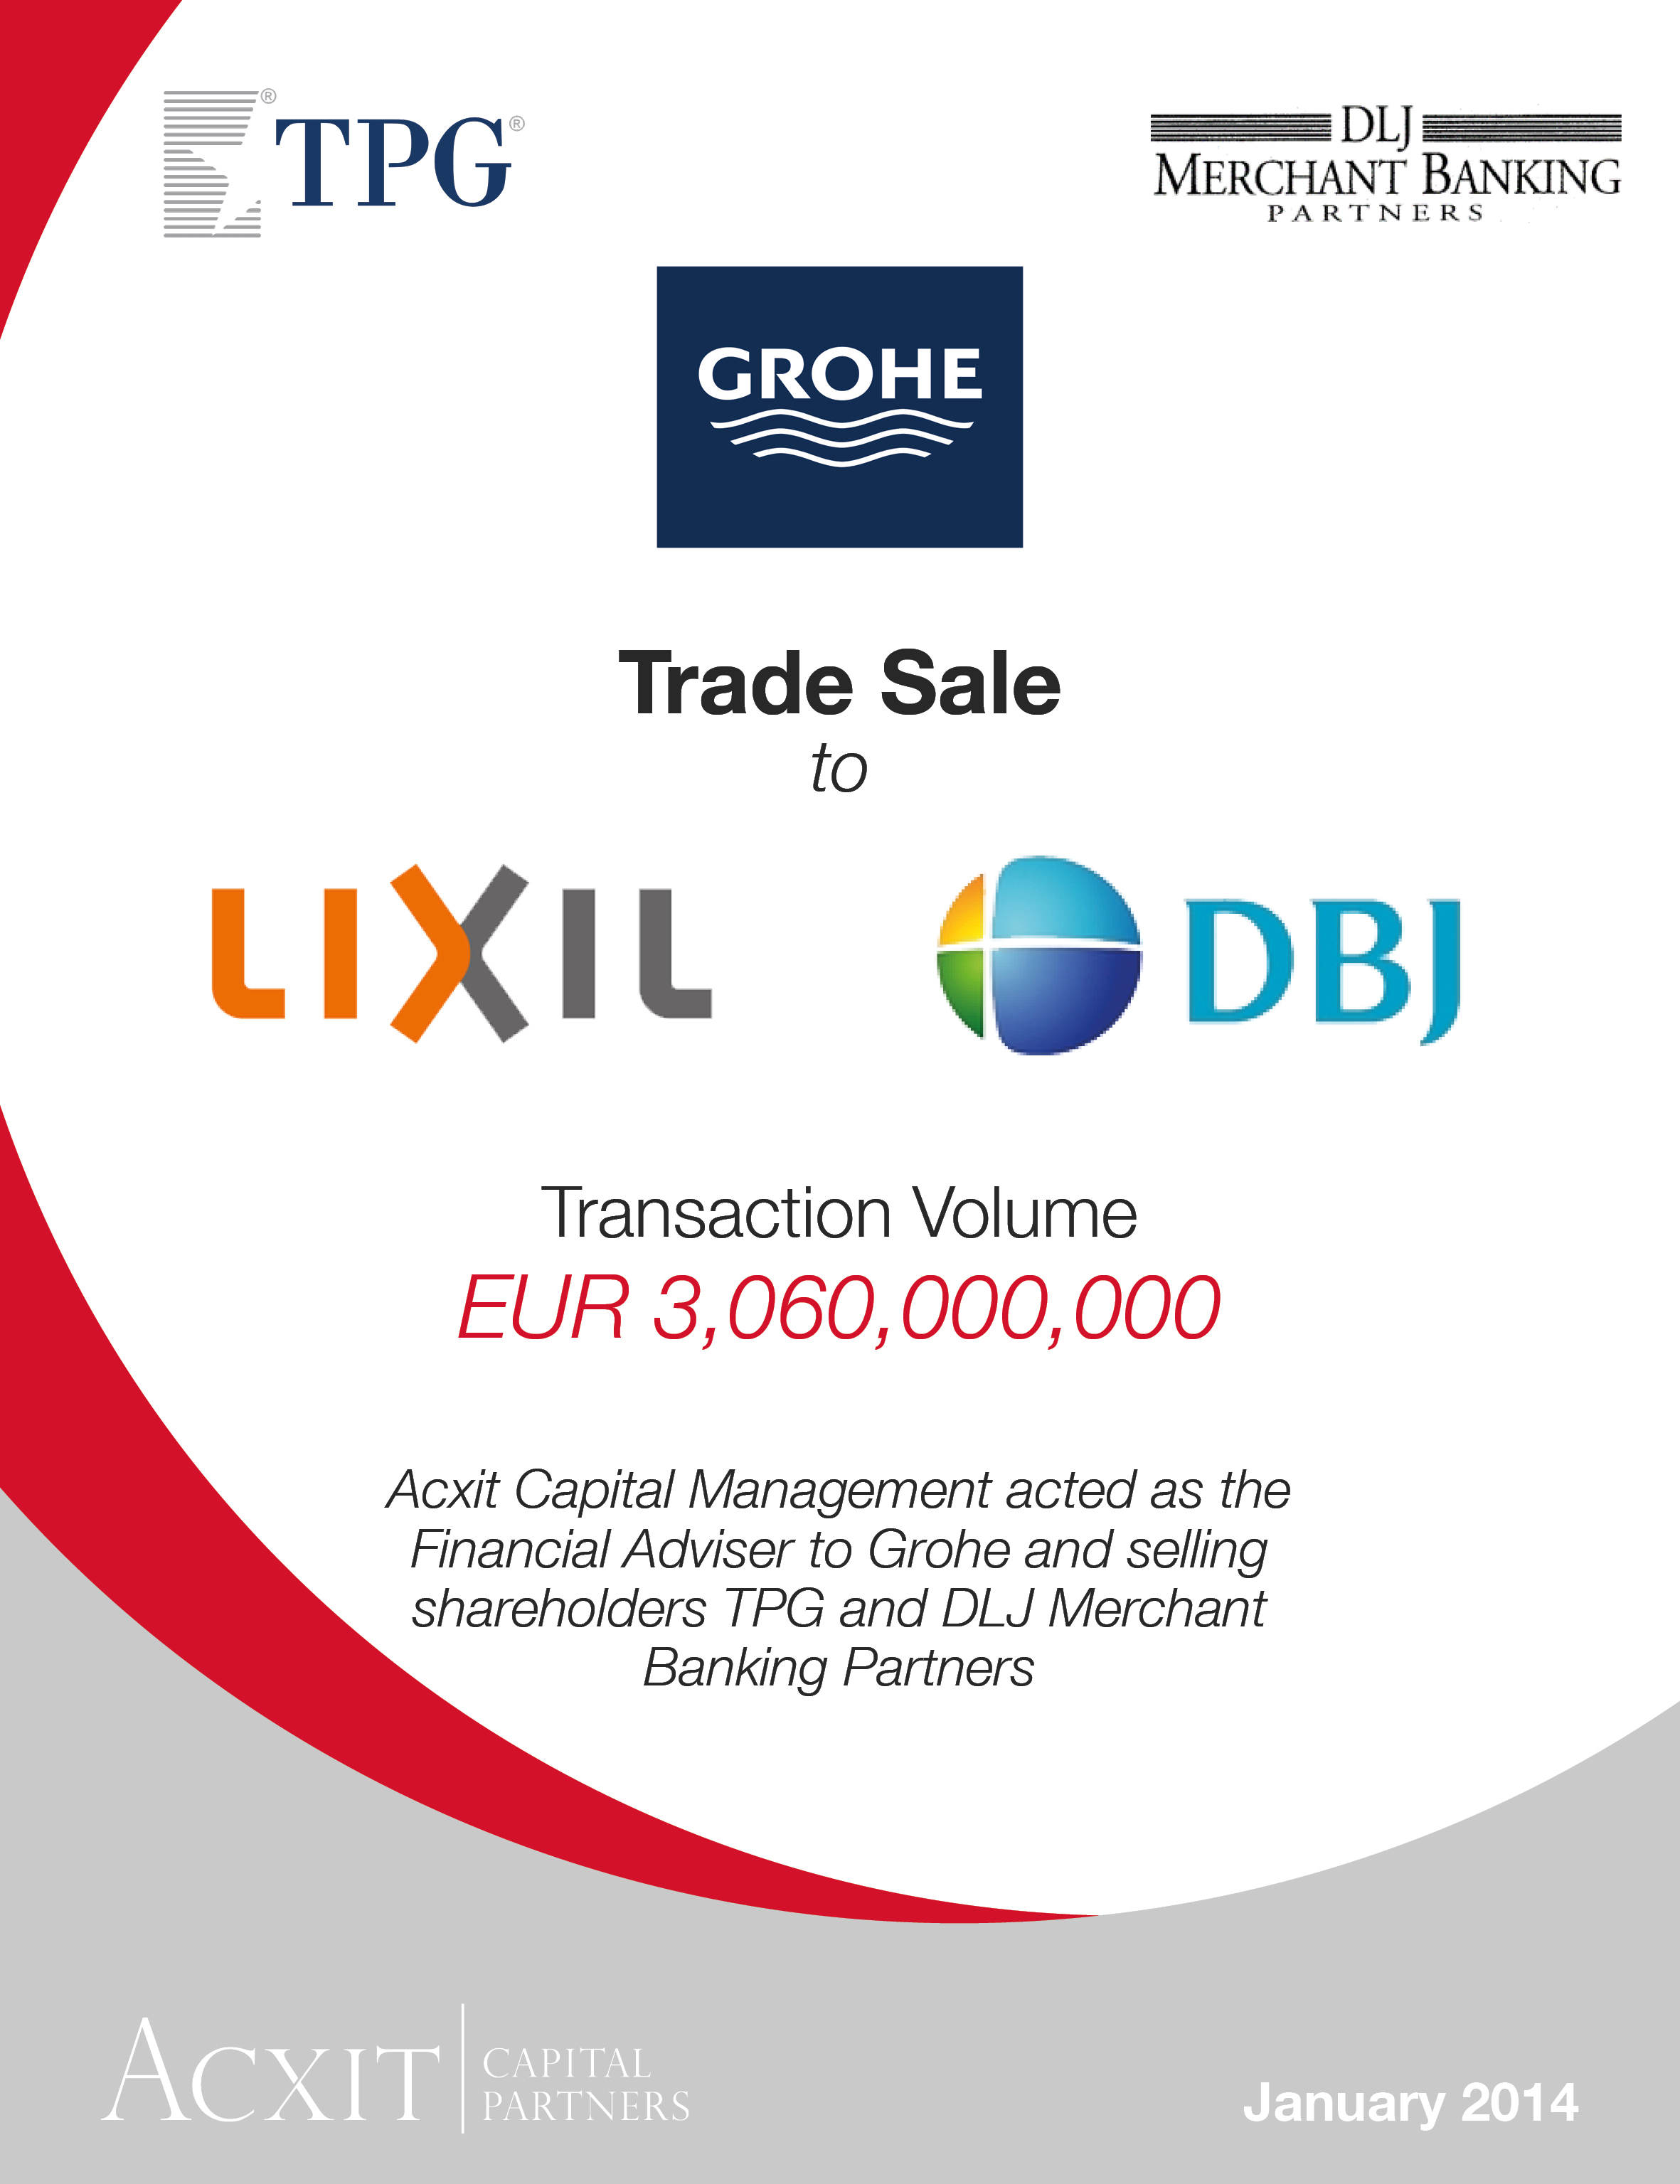 Grohe sold to LIXIL - ACXIT Capital Partners